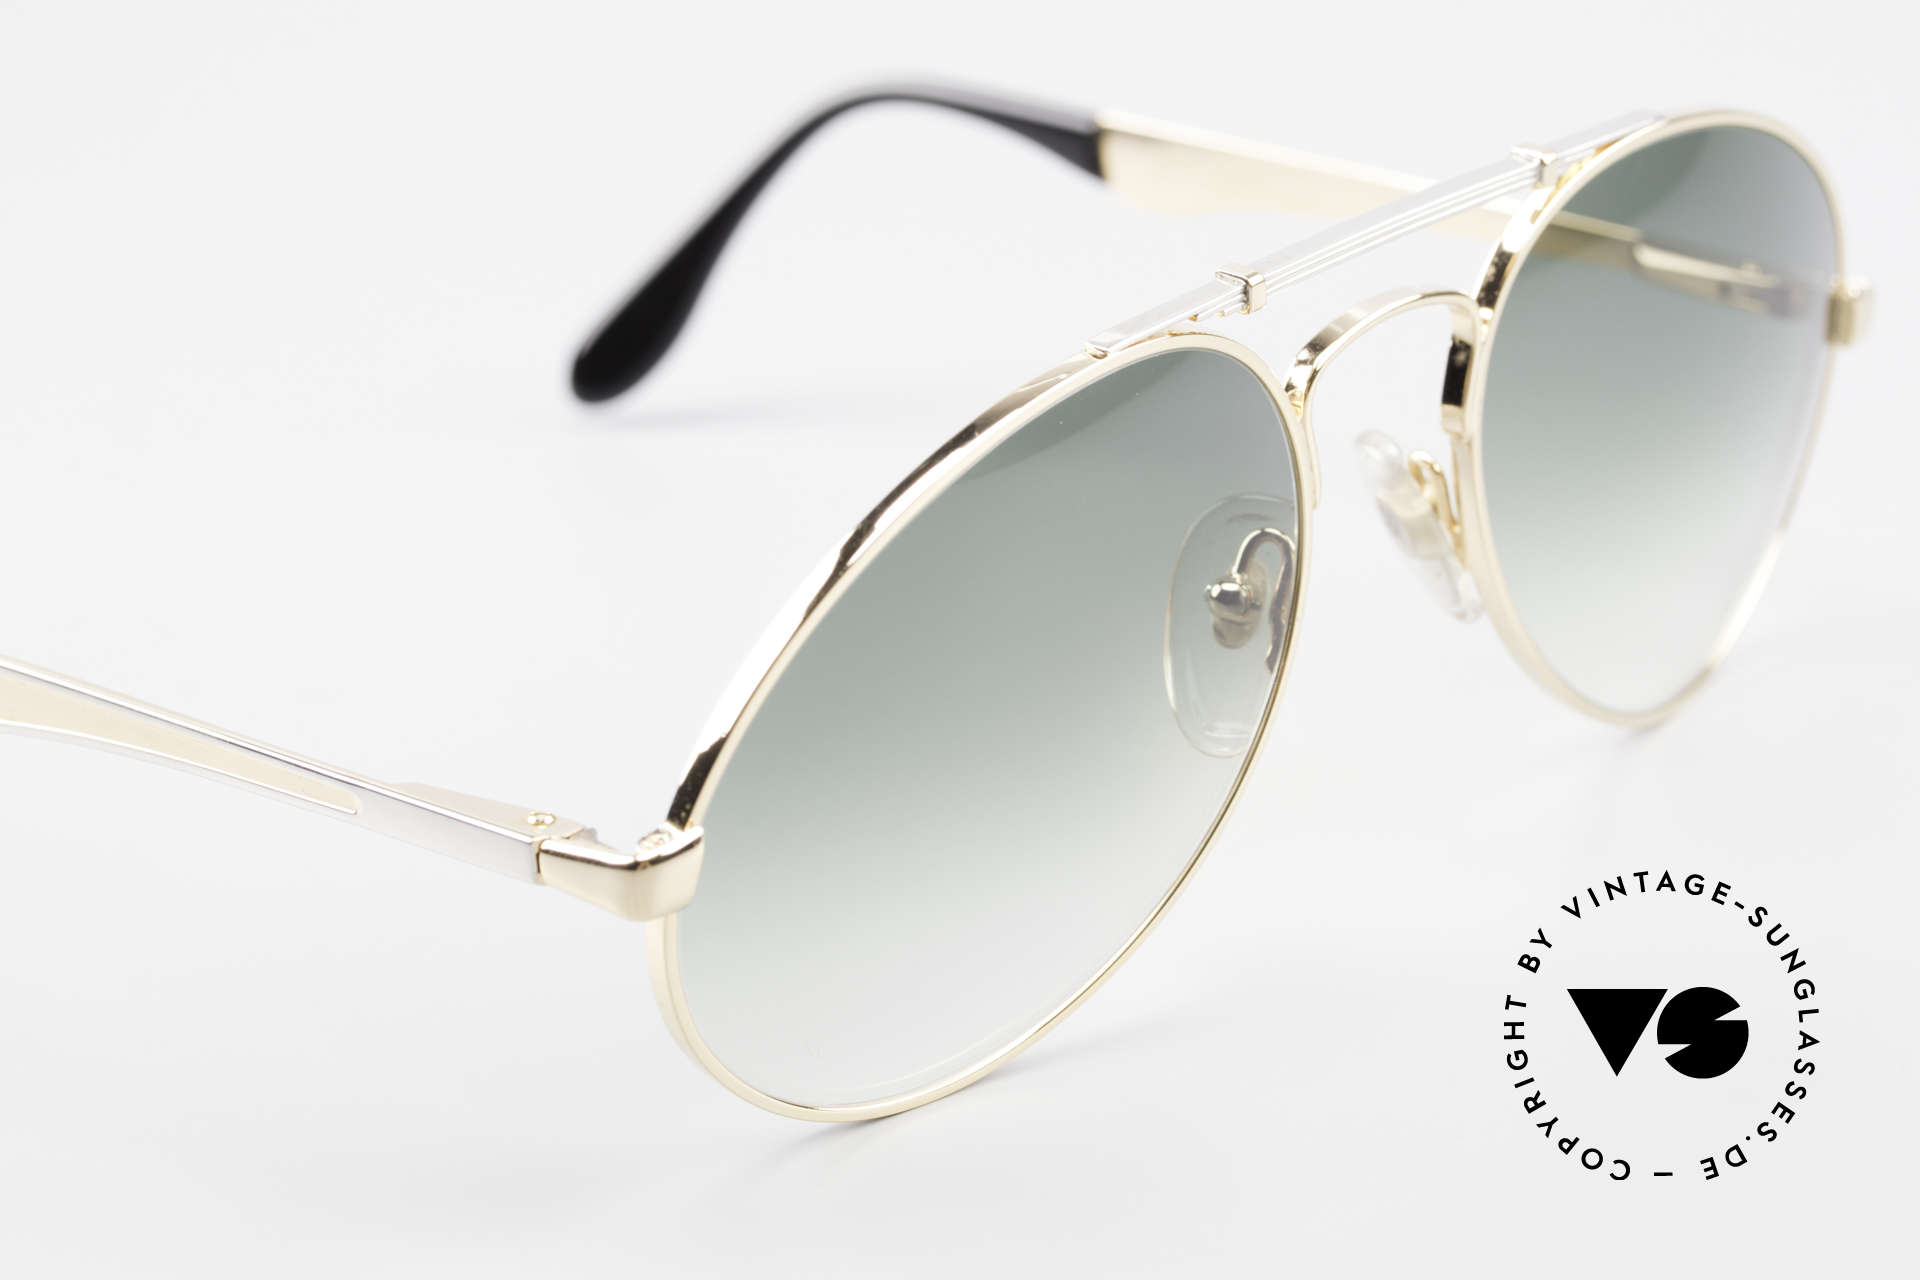 Bugatti 11908 80's Luxury Sunglasses XLarge, NO RETRO sunglasses; but a costly 80's Original!, Made for Men